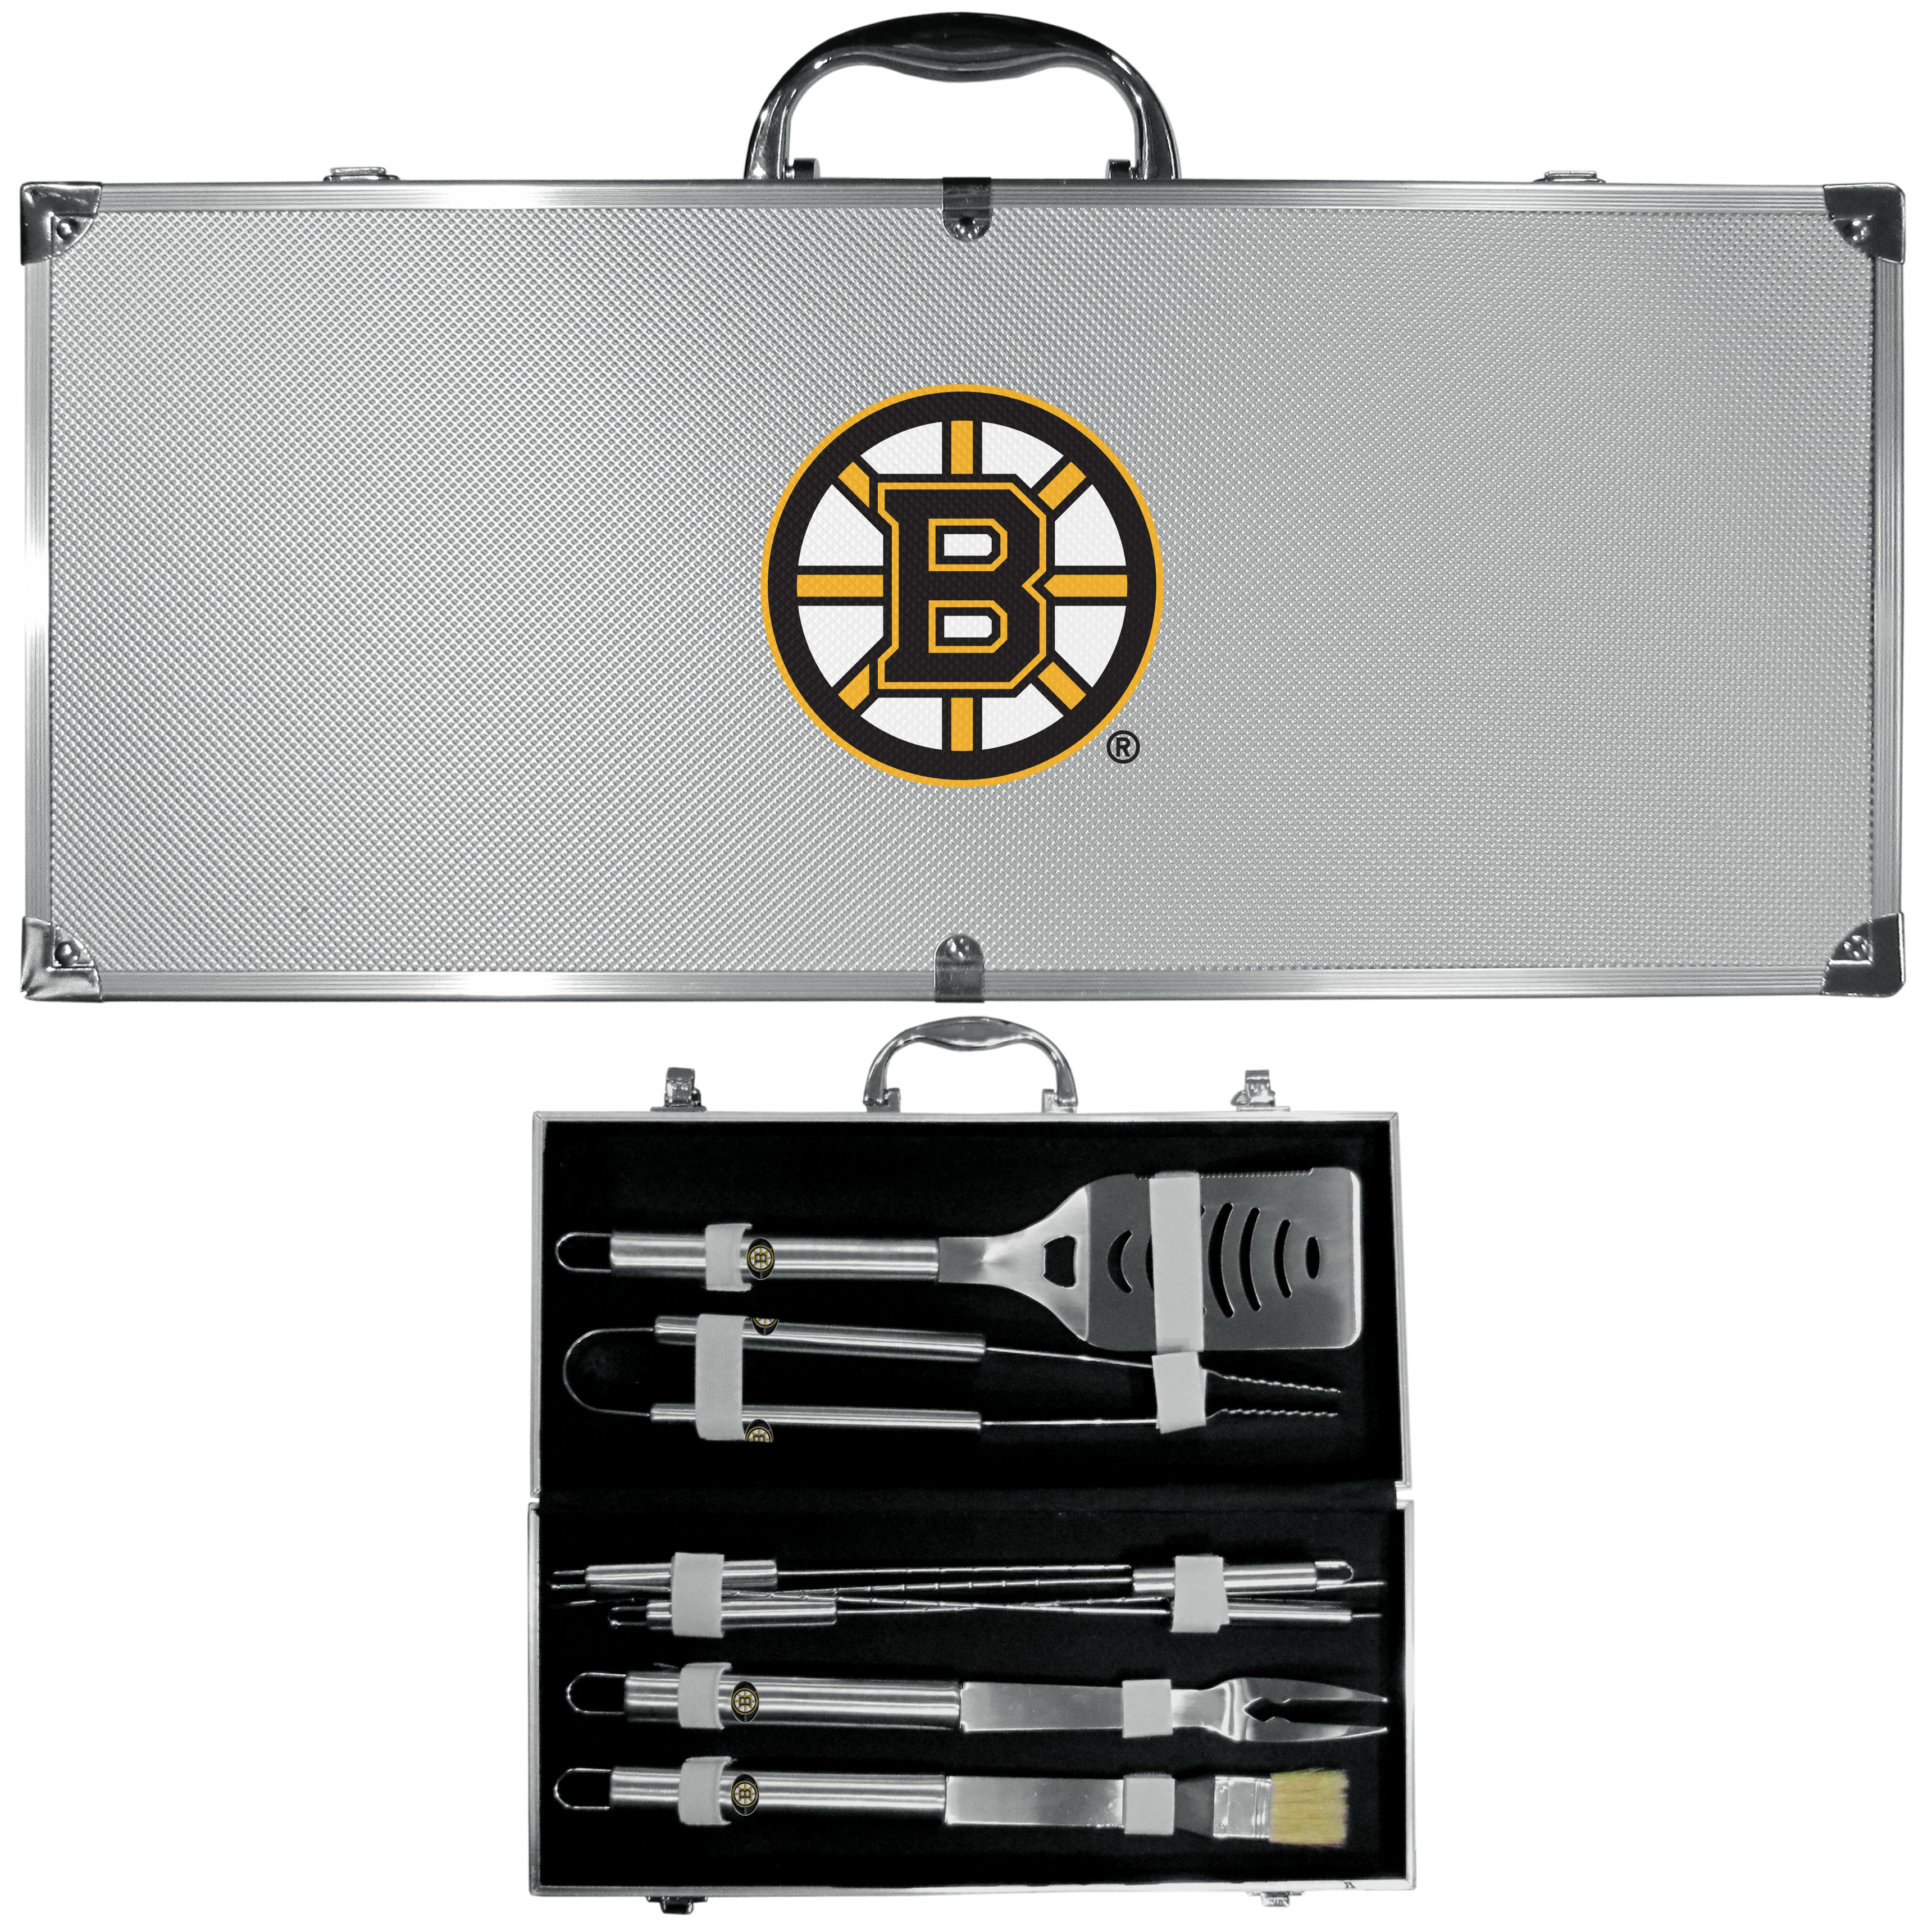 Boston Bruins® 8 pc Stainless Steel BBQ Set w/Metal Case - This is the ultimate Boston Bruins® tailgate accessory! The high quality, 420 grade stainless steel tools are durable and well-made enough to make even the pickiest grill master smile. This complete grill accessory kit includes; 4 skewers, spatula with bottle opener and serrated knife edge, basting brush, tongs and a fork. The 18 inch metal carrying case makes this a great outdoor kit making grilling an ease while camping, tailgating or while having a game day party on your patio. The tools are 17 inches long and feature a metal team emblem. The metal case features a large, metal team emblem with exceptional detail. This high-end men's gift is sure to be a hit as a present on Father's Day or Christmas.